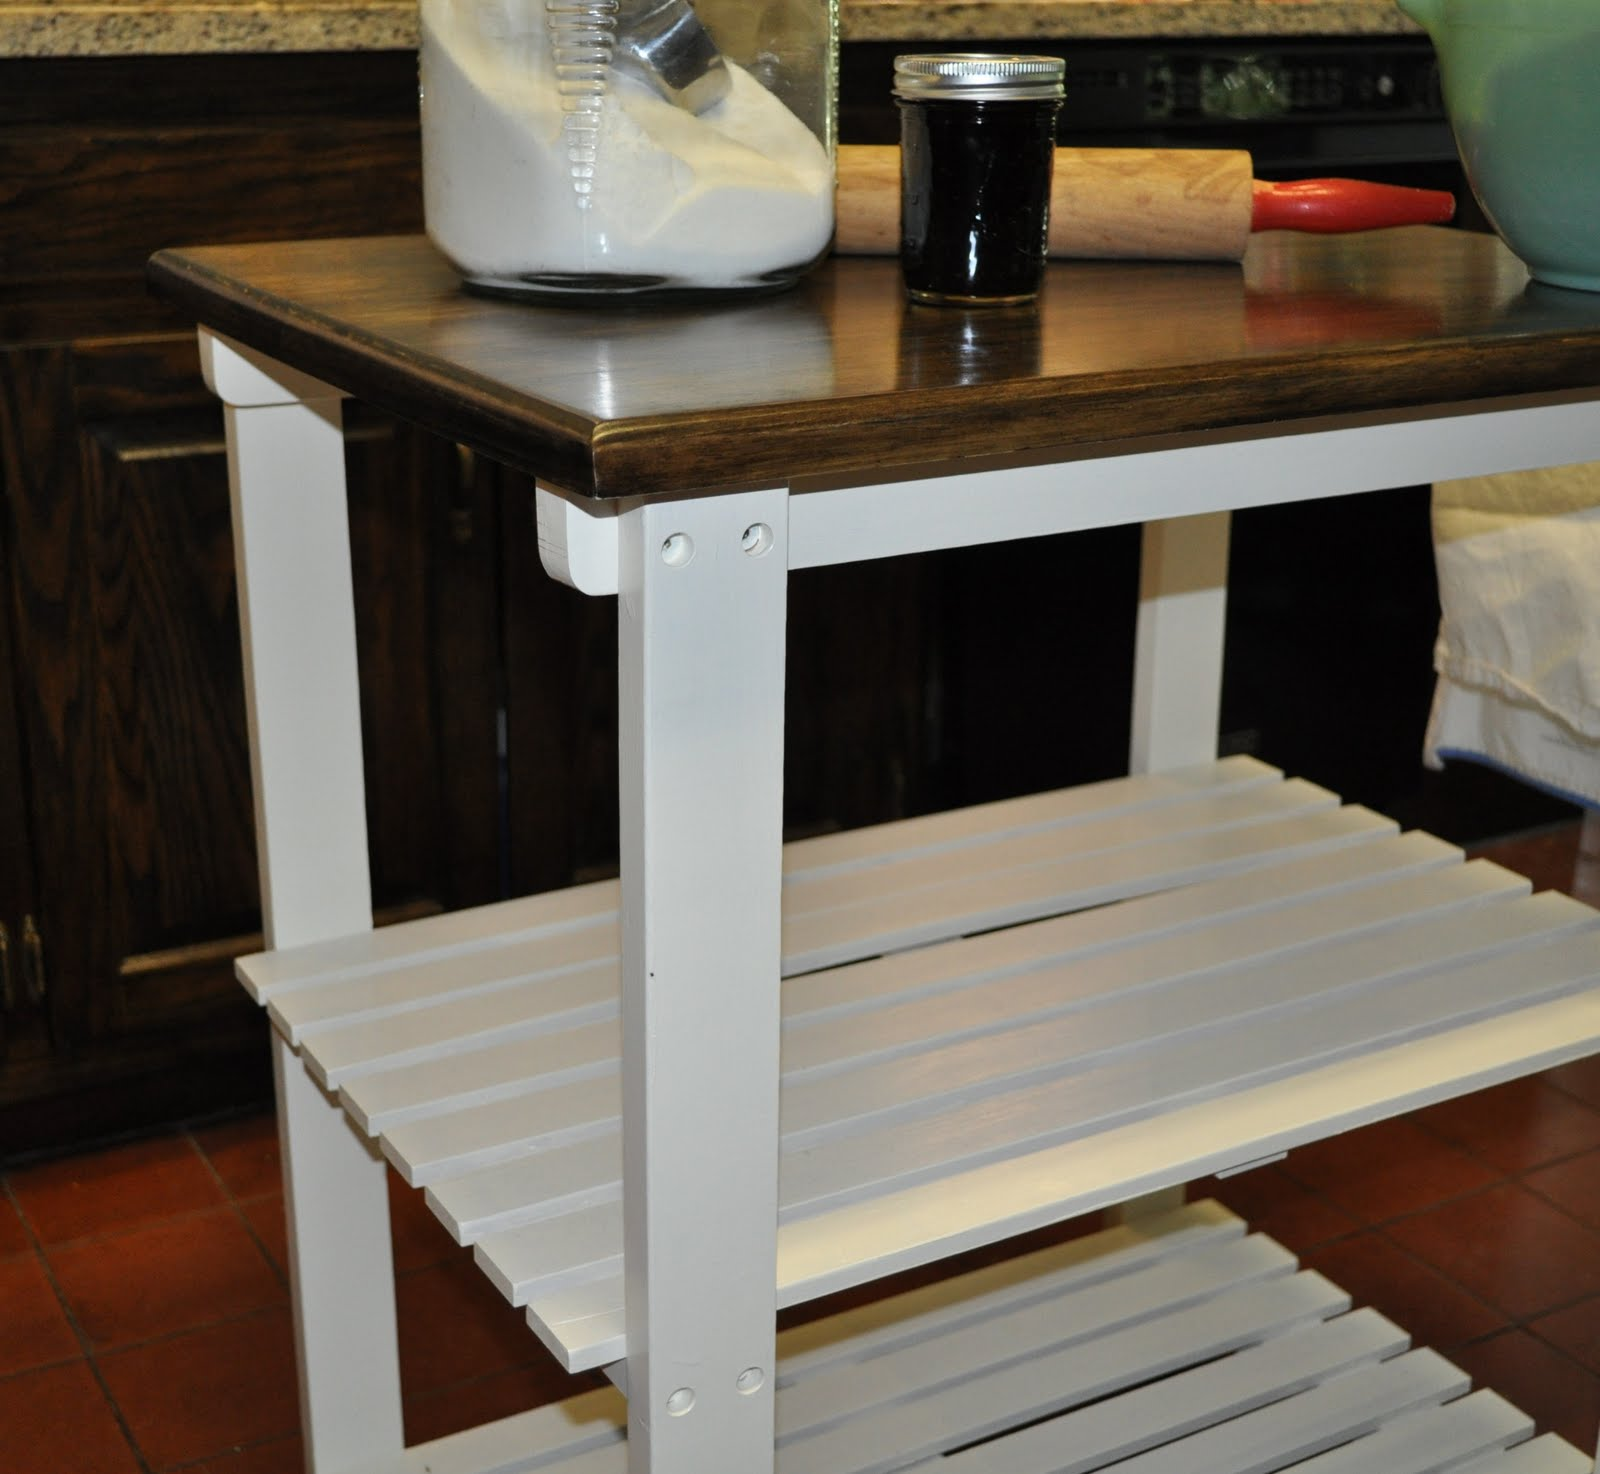 Small Kitchen Island Bench: Small Table Kitchen Island Redo! Guest